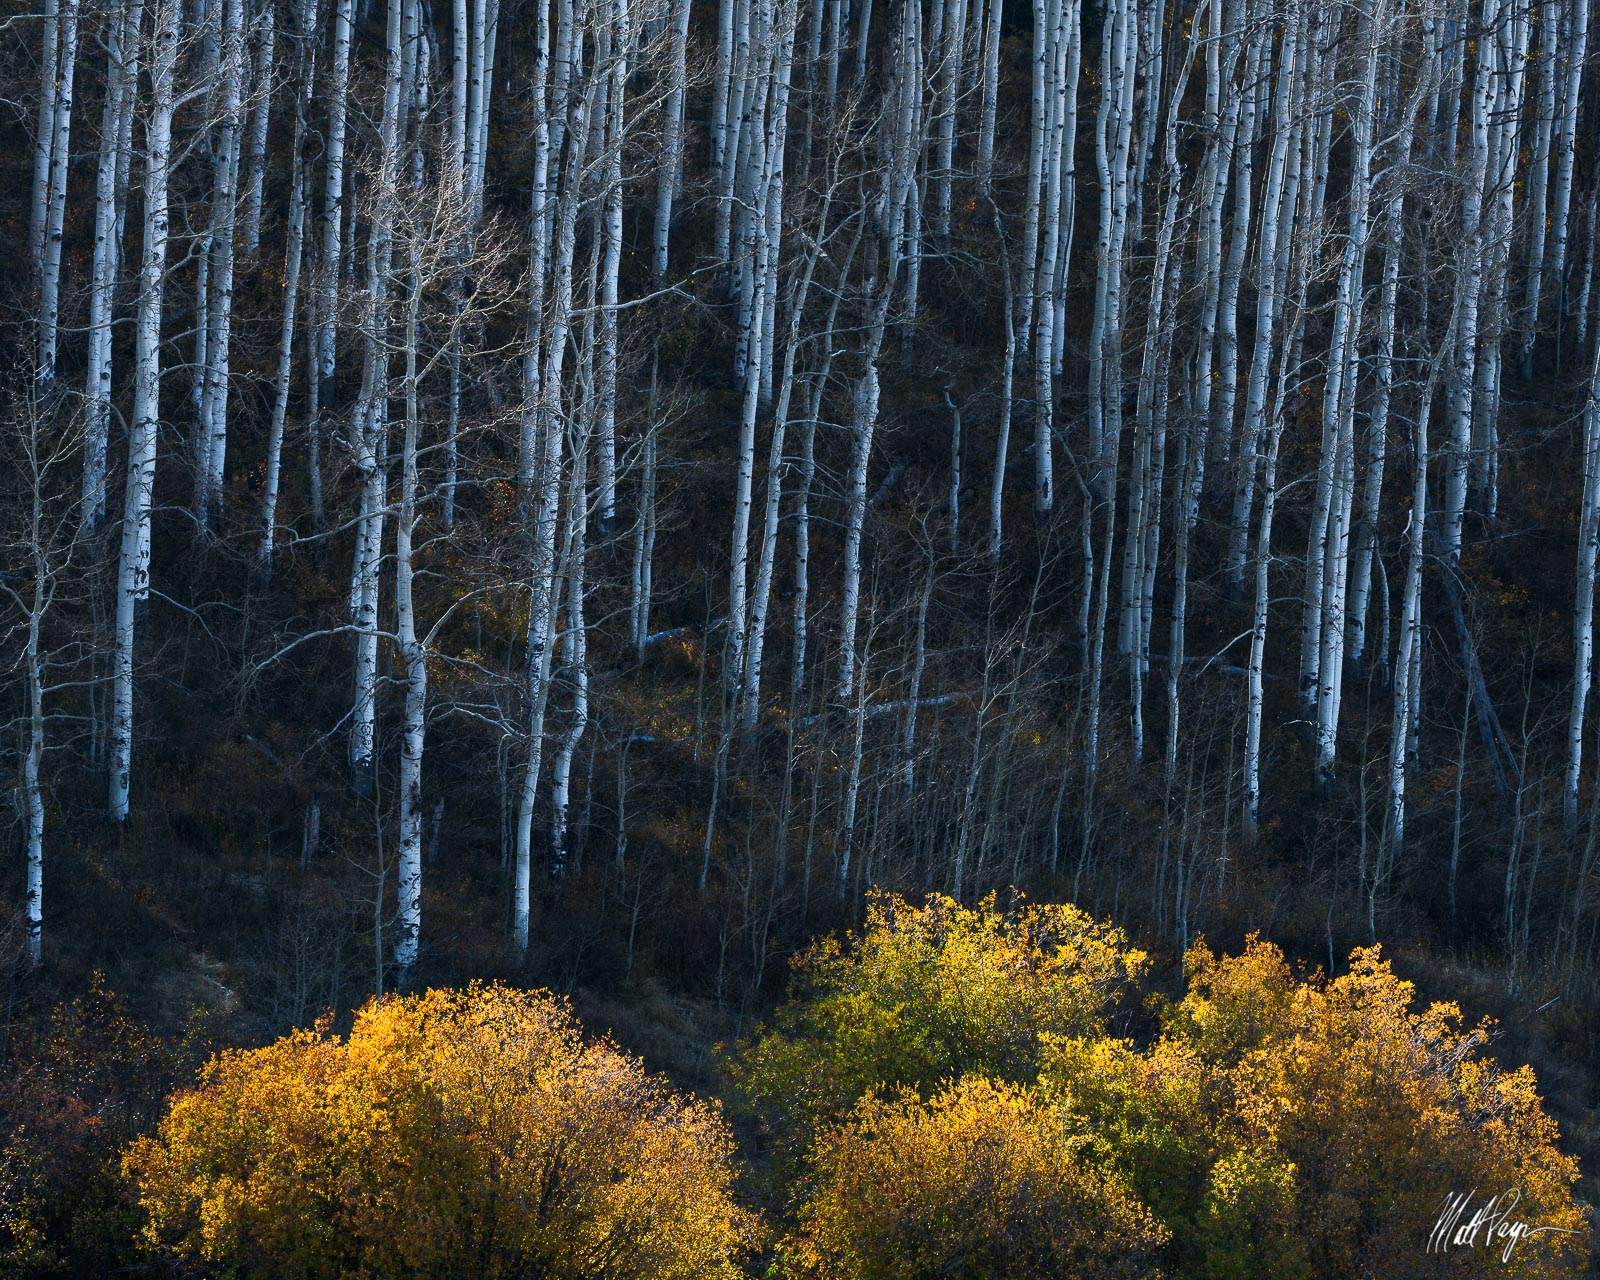 Aspen Trees, Autumn, Colorado, Paonia, willow, Gunnison National Forest, photo